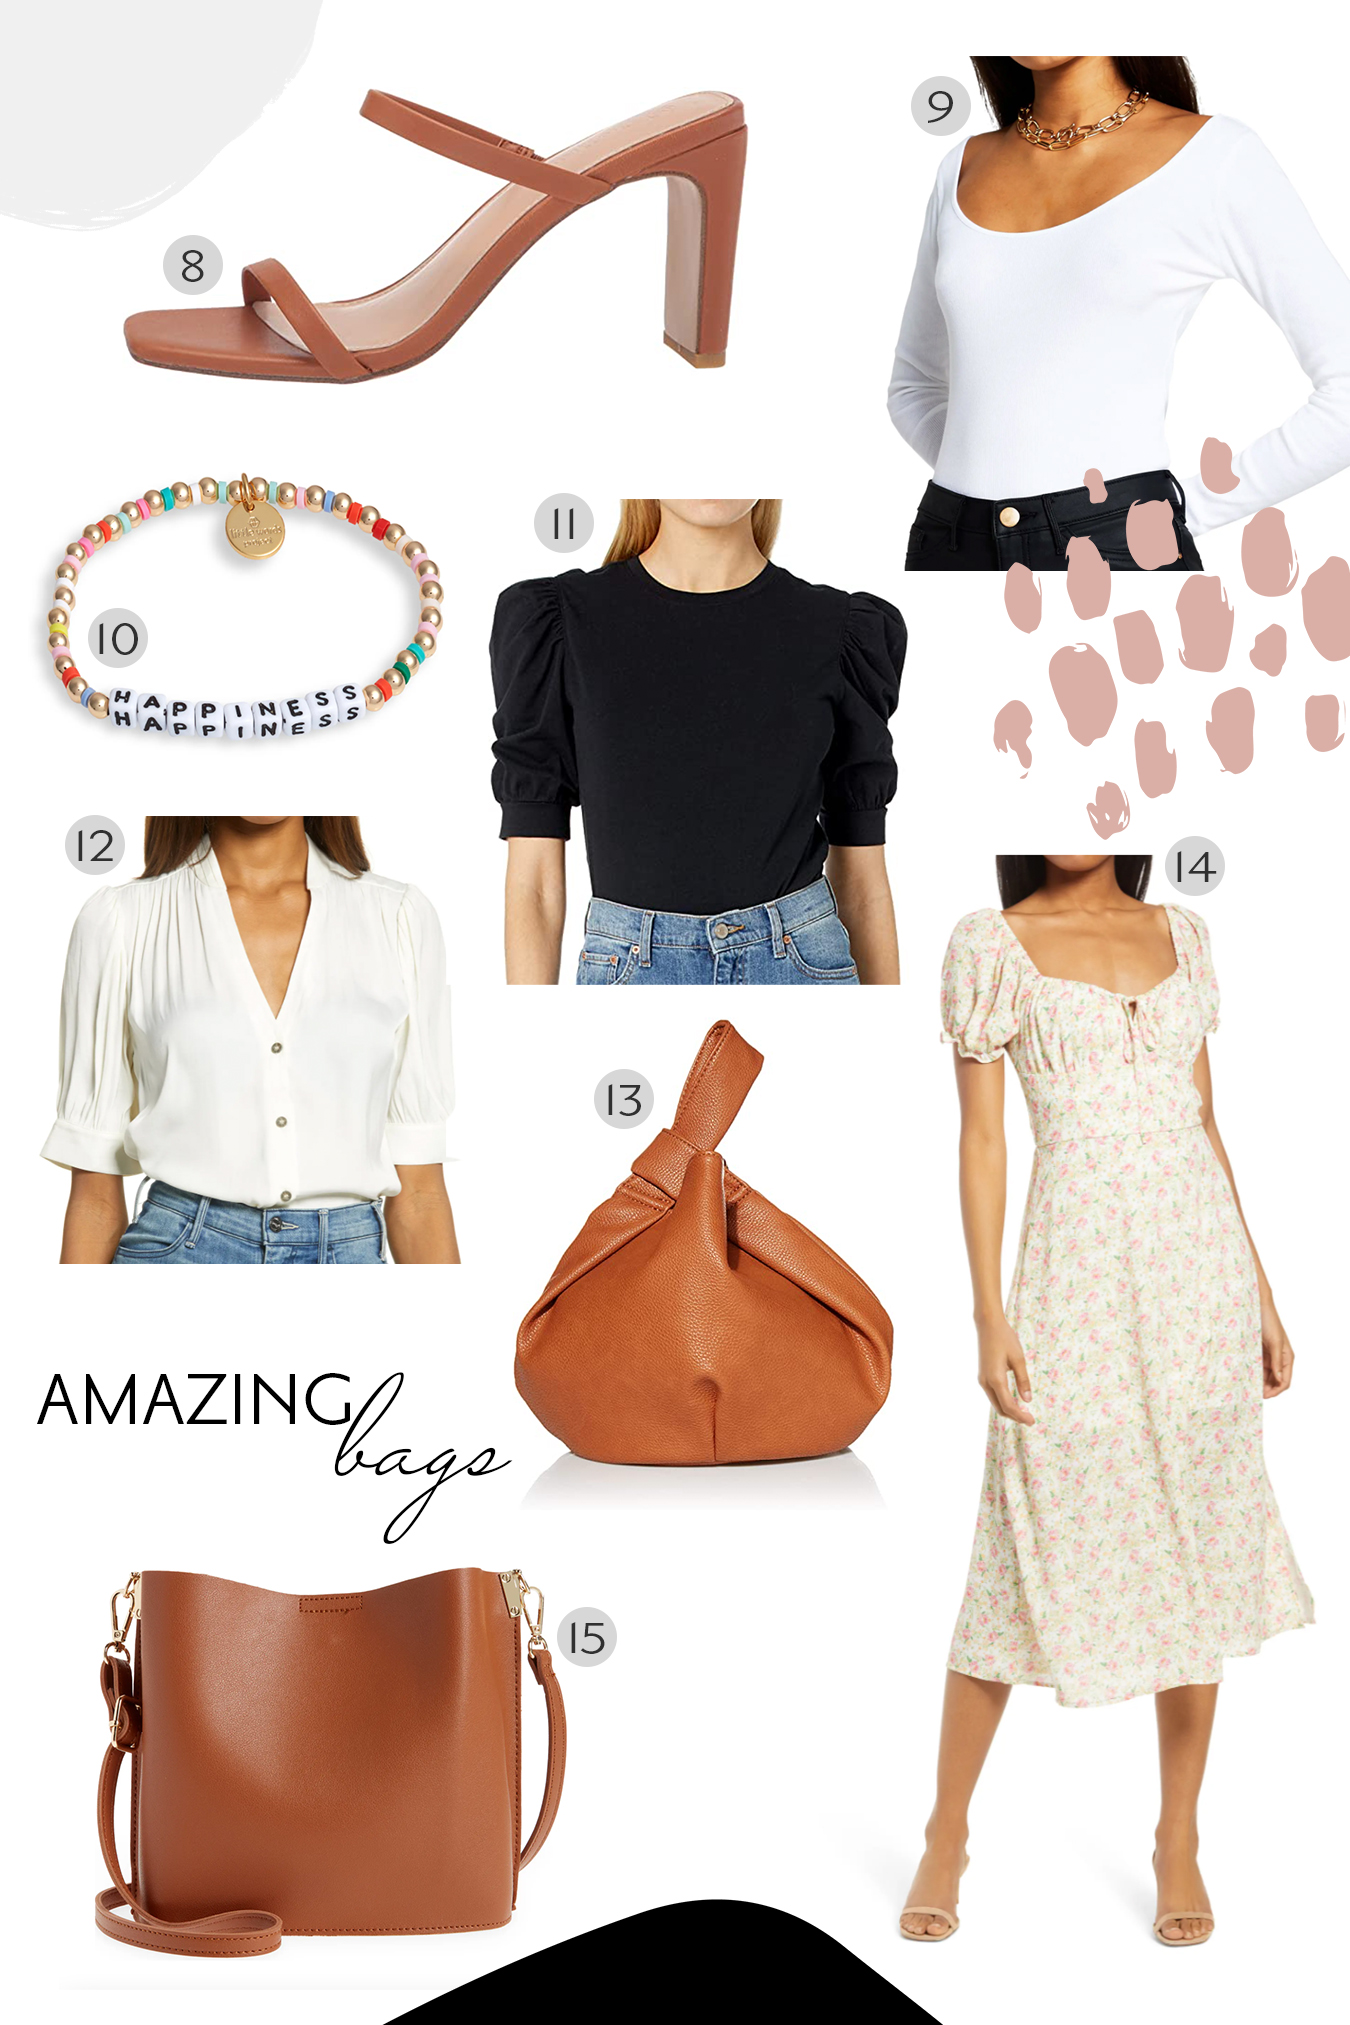 spring outfit and accessories